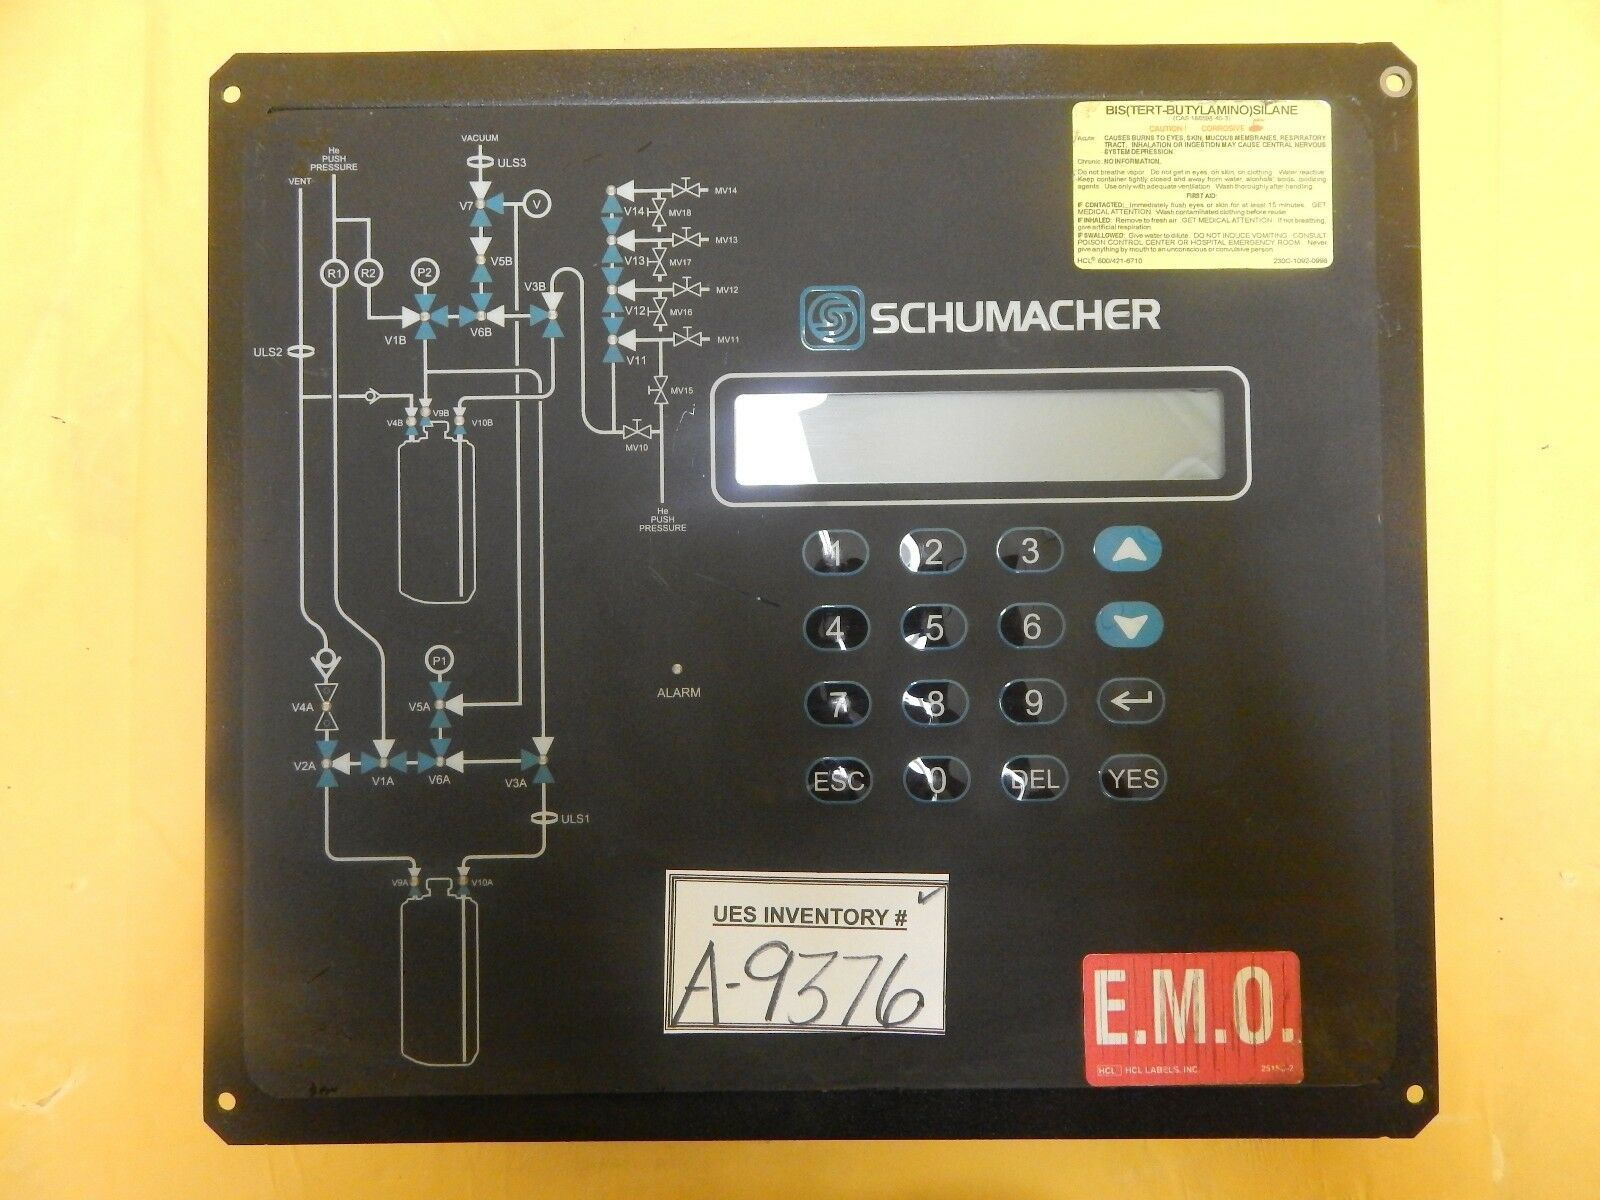 Schumacher 1730-3013 Operator Interface Control Panel Assembly Rev. D.1 Used